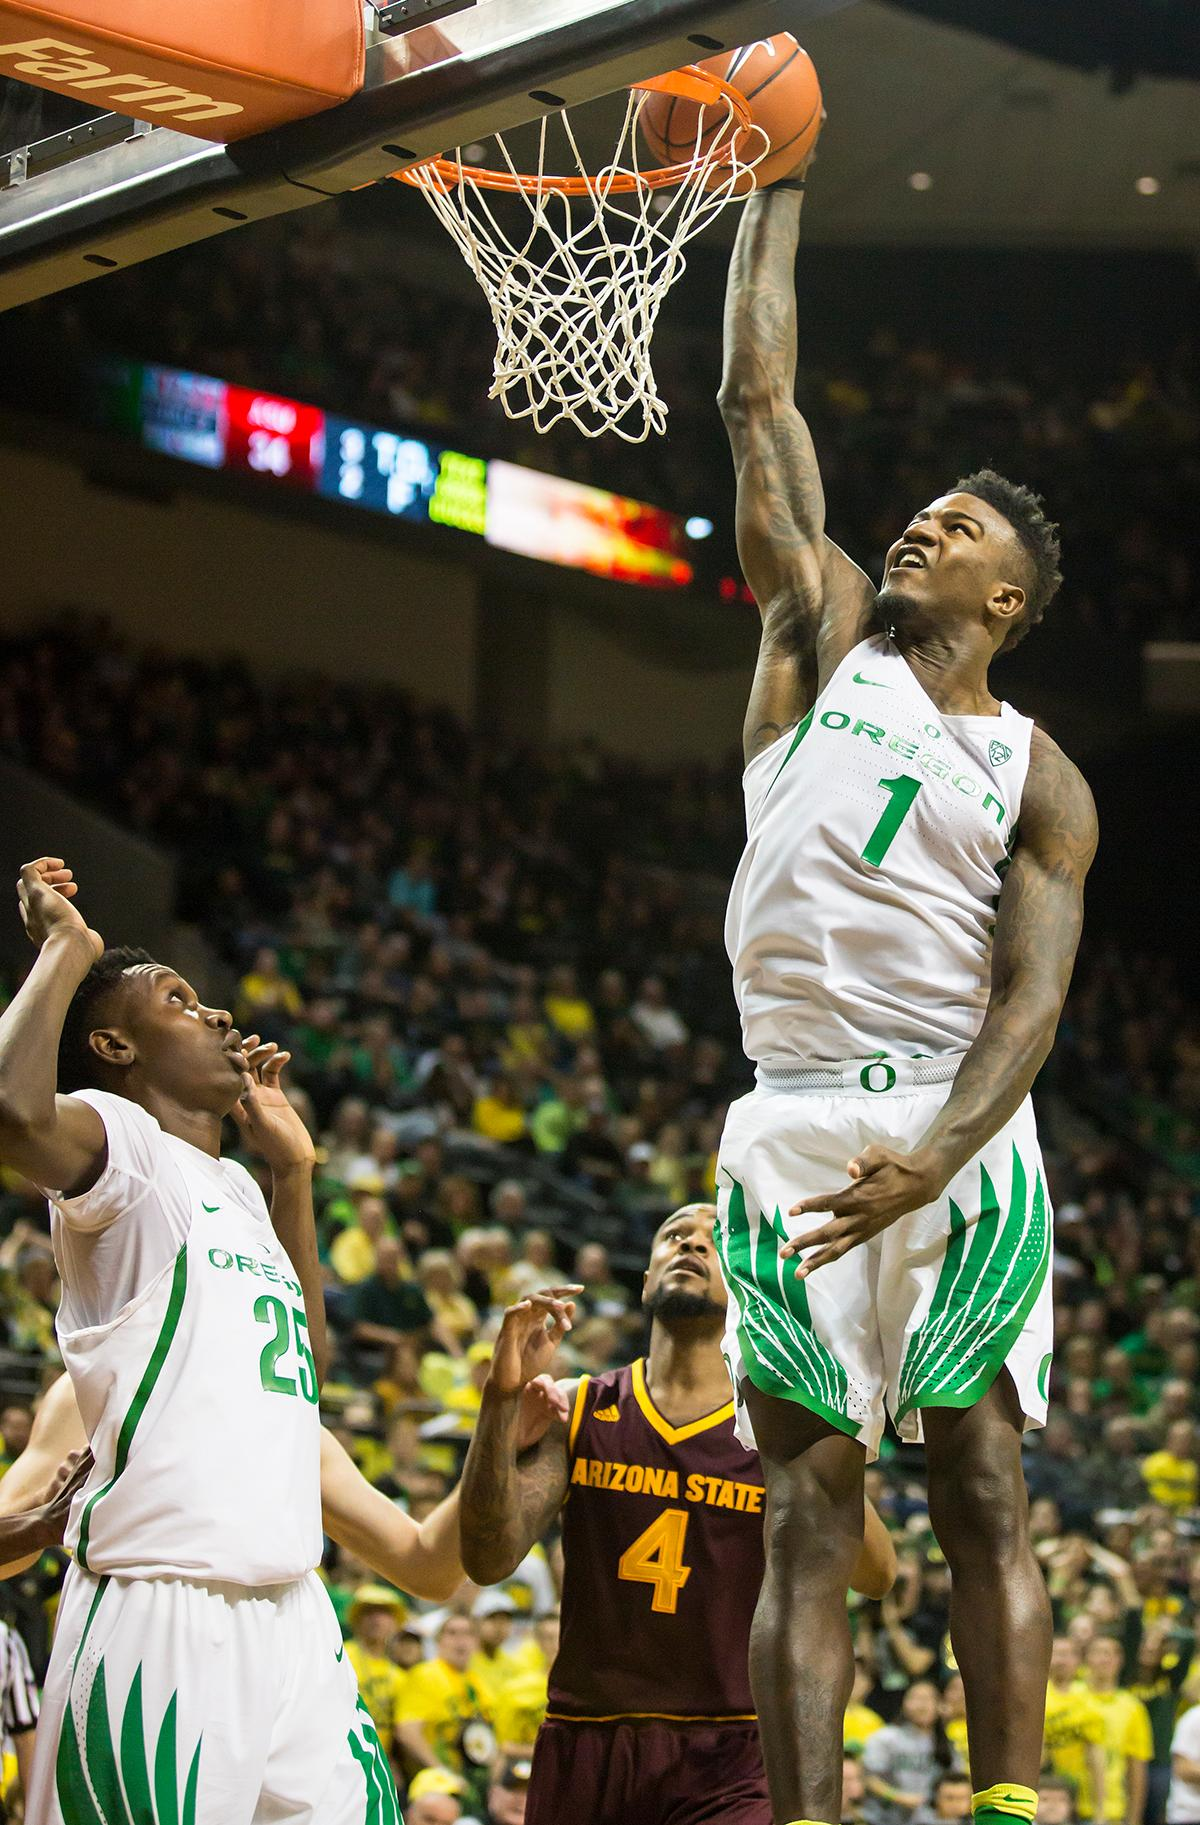 Oregon forward Jordan Bell (#1) leaps to dunk the ball as Oregon's Chris Boucher (#25) and Arizona State's Torian Graham (#3) watch. The Oregon Ducks defeated the Arizona State Sun Devils 71 to 70. Photo by Ben Lonergan, Oregon News Lab